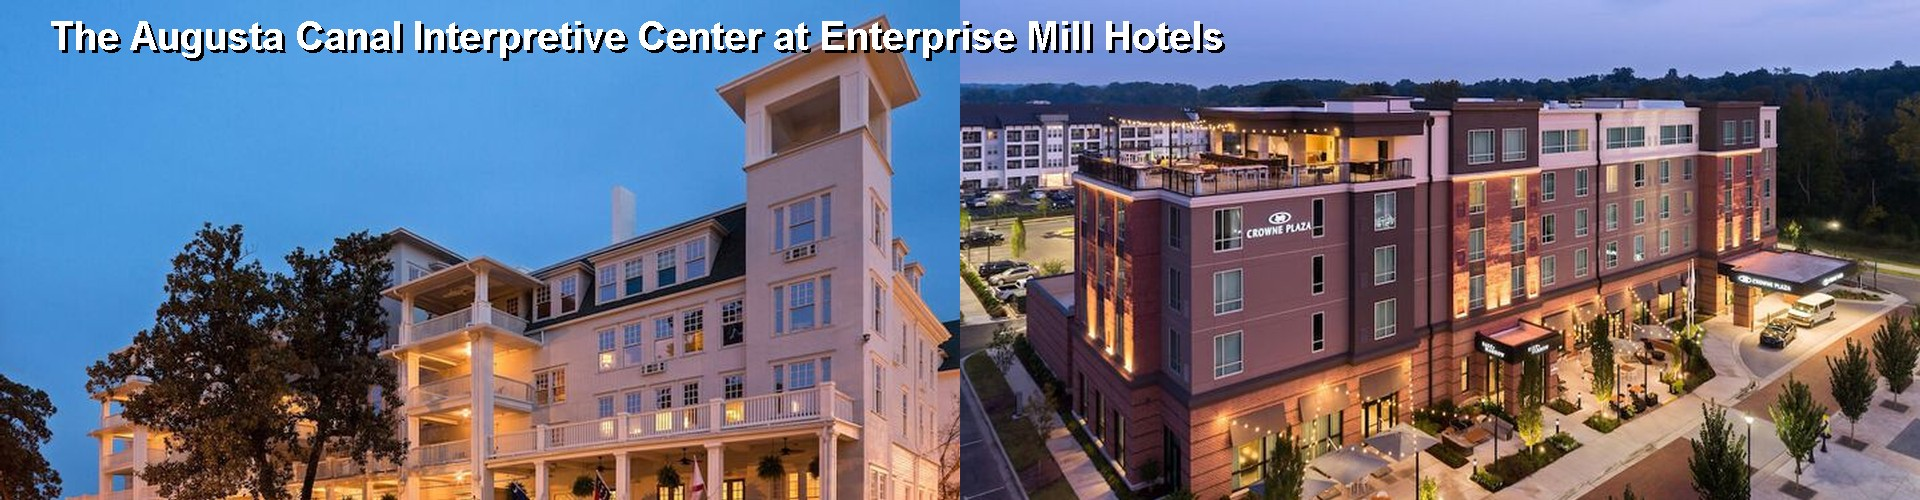 5 Best Hotels near The Augusta Canal Interpretive Center at Enterprise Mill